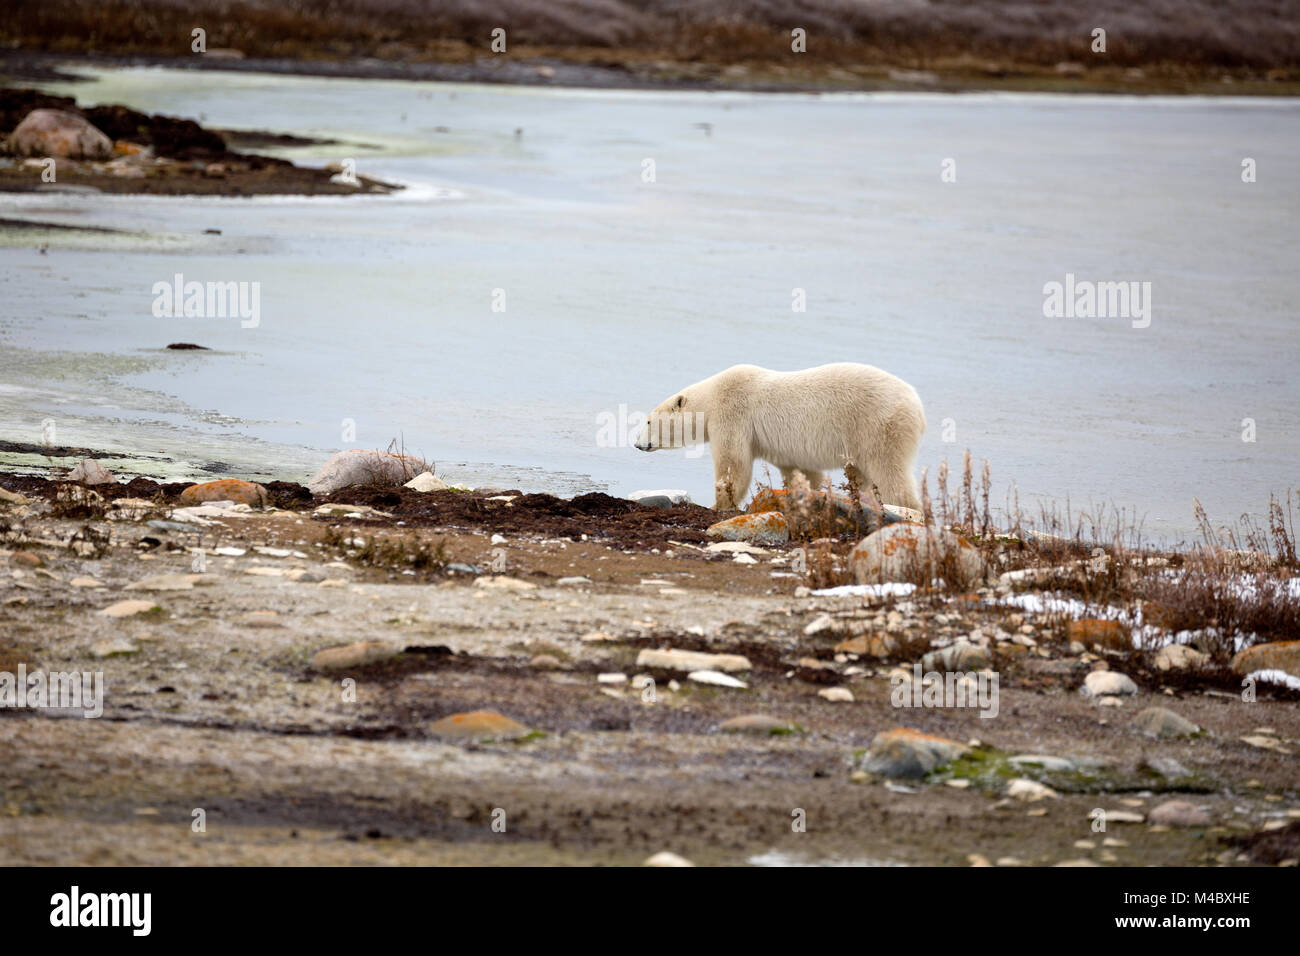 A polar bear at the Hudson Bay on feed search - Stock Image